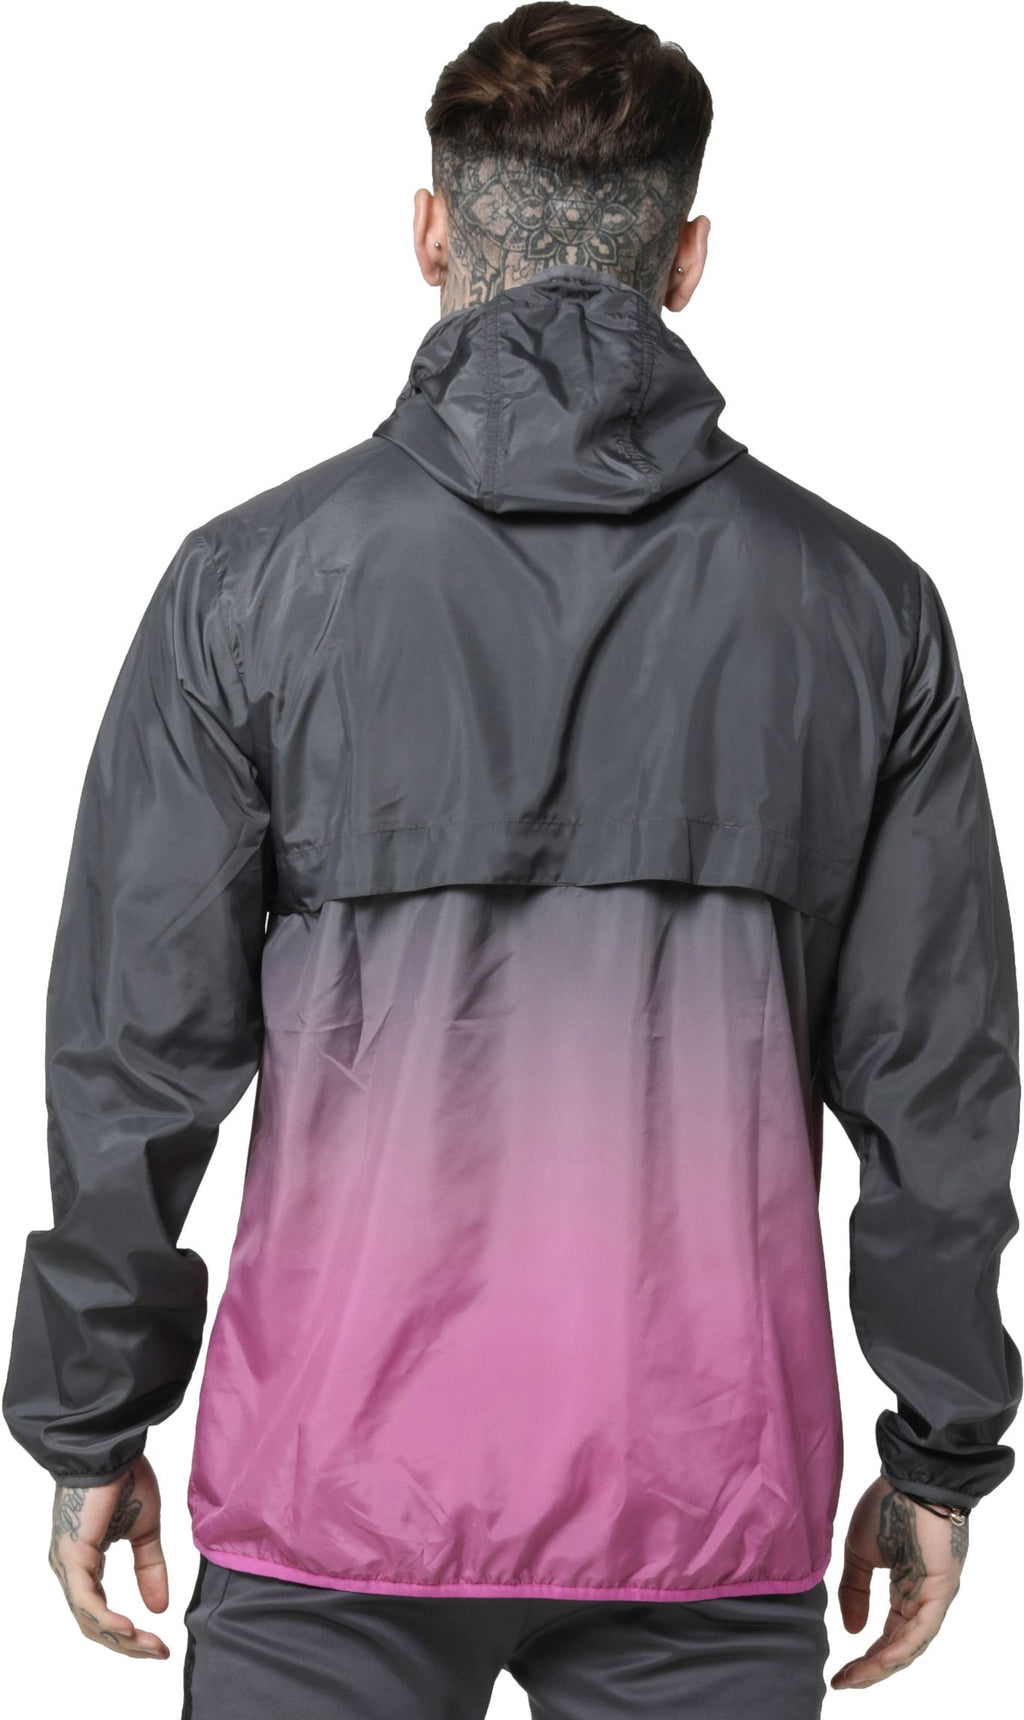 Sik Silk Fade Windrunner Lightweight Jacket Charcoal